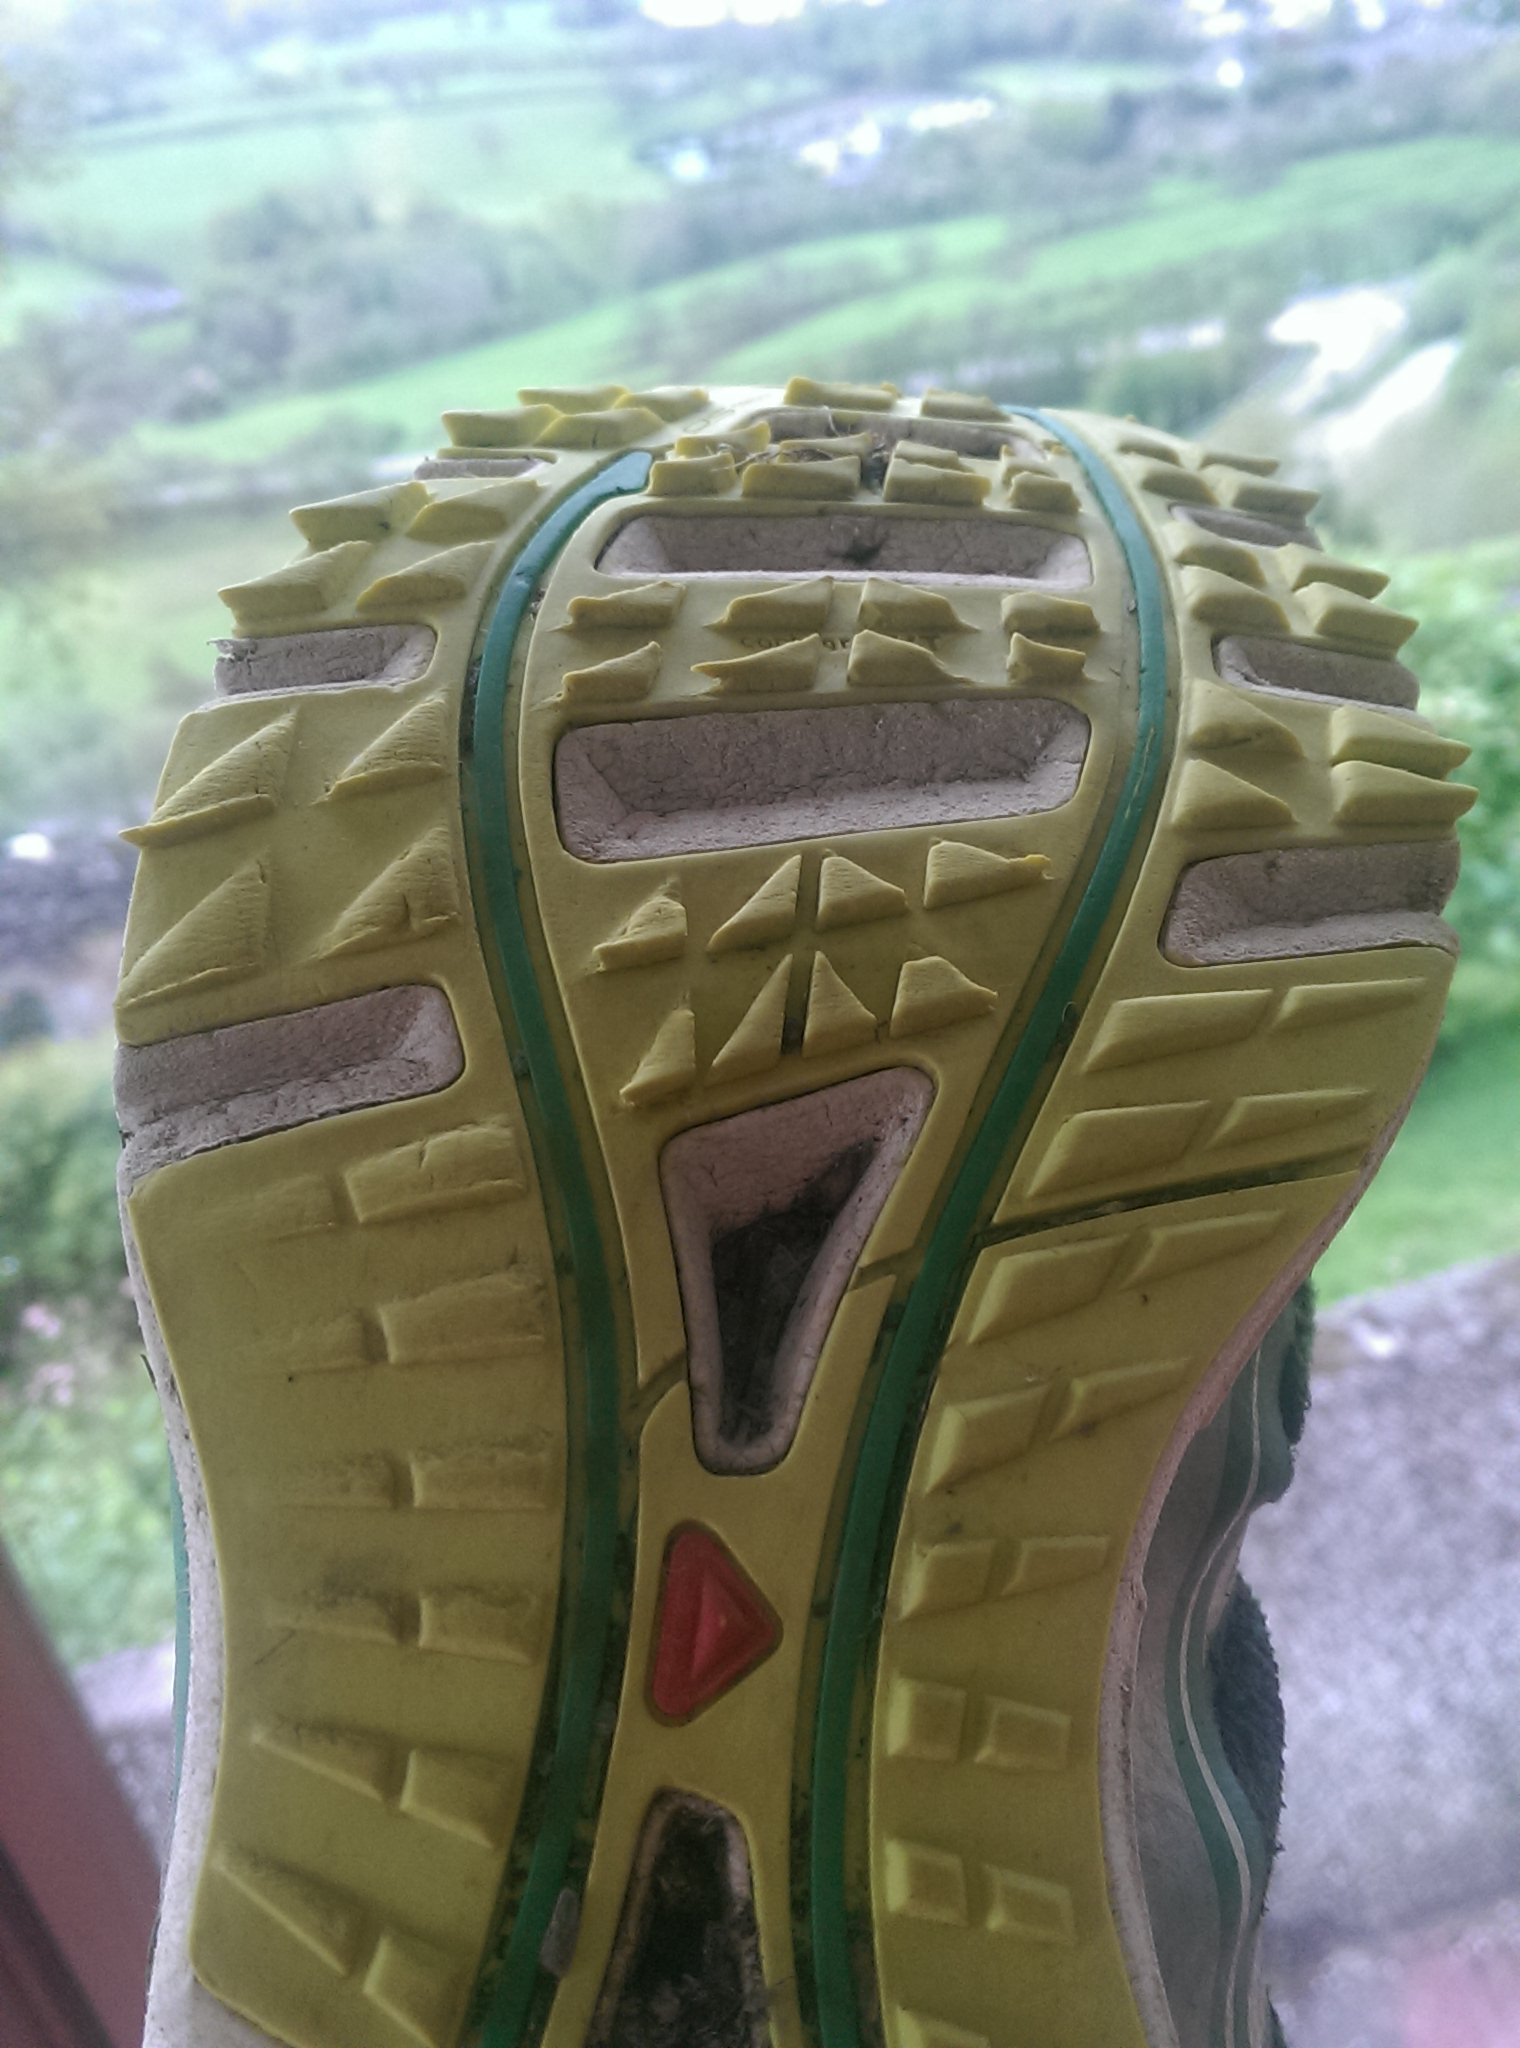 Salomon Sense Pro sole unit after 600km of abuse.